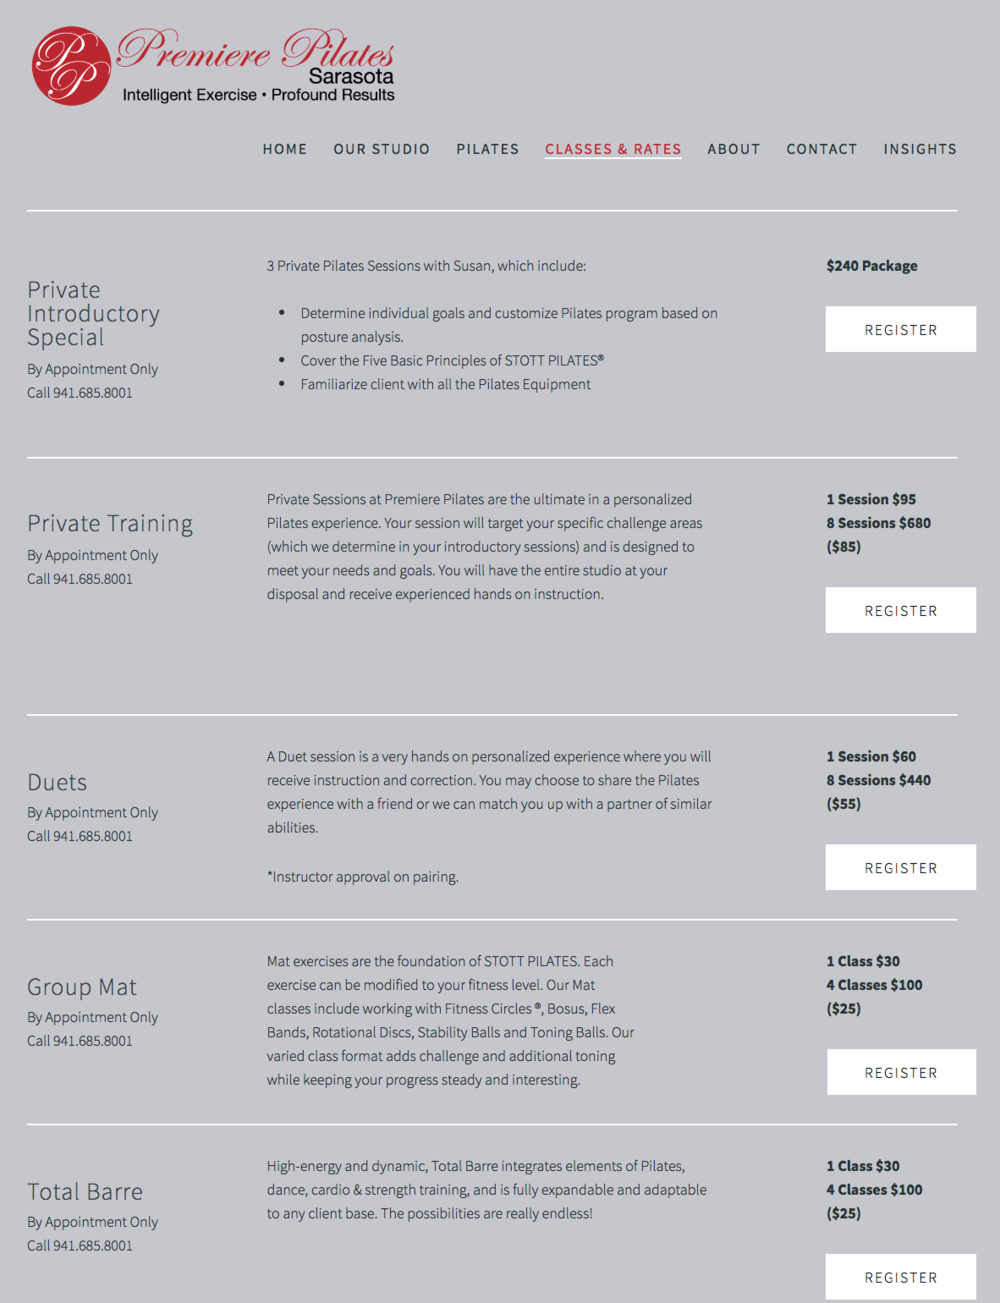 premiere-pilates-sarasota-pricing-page.png